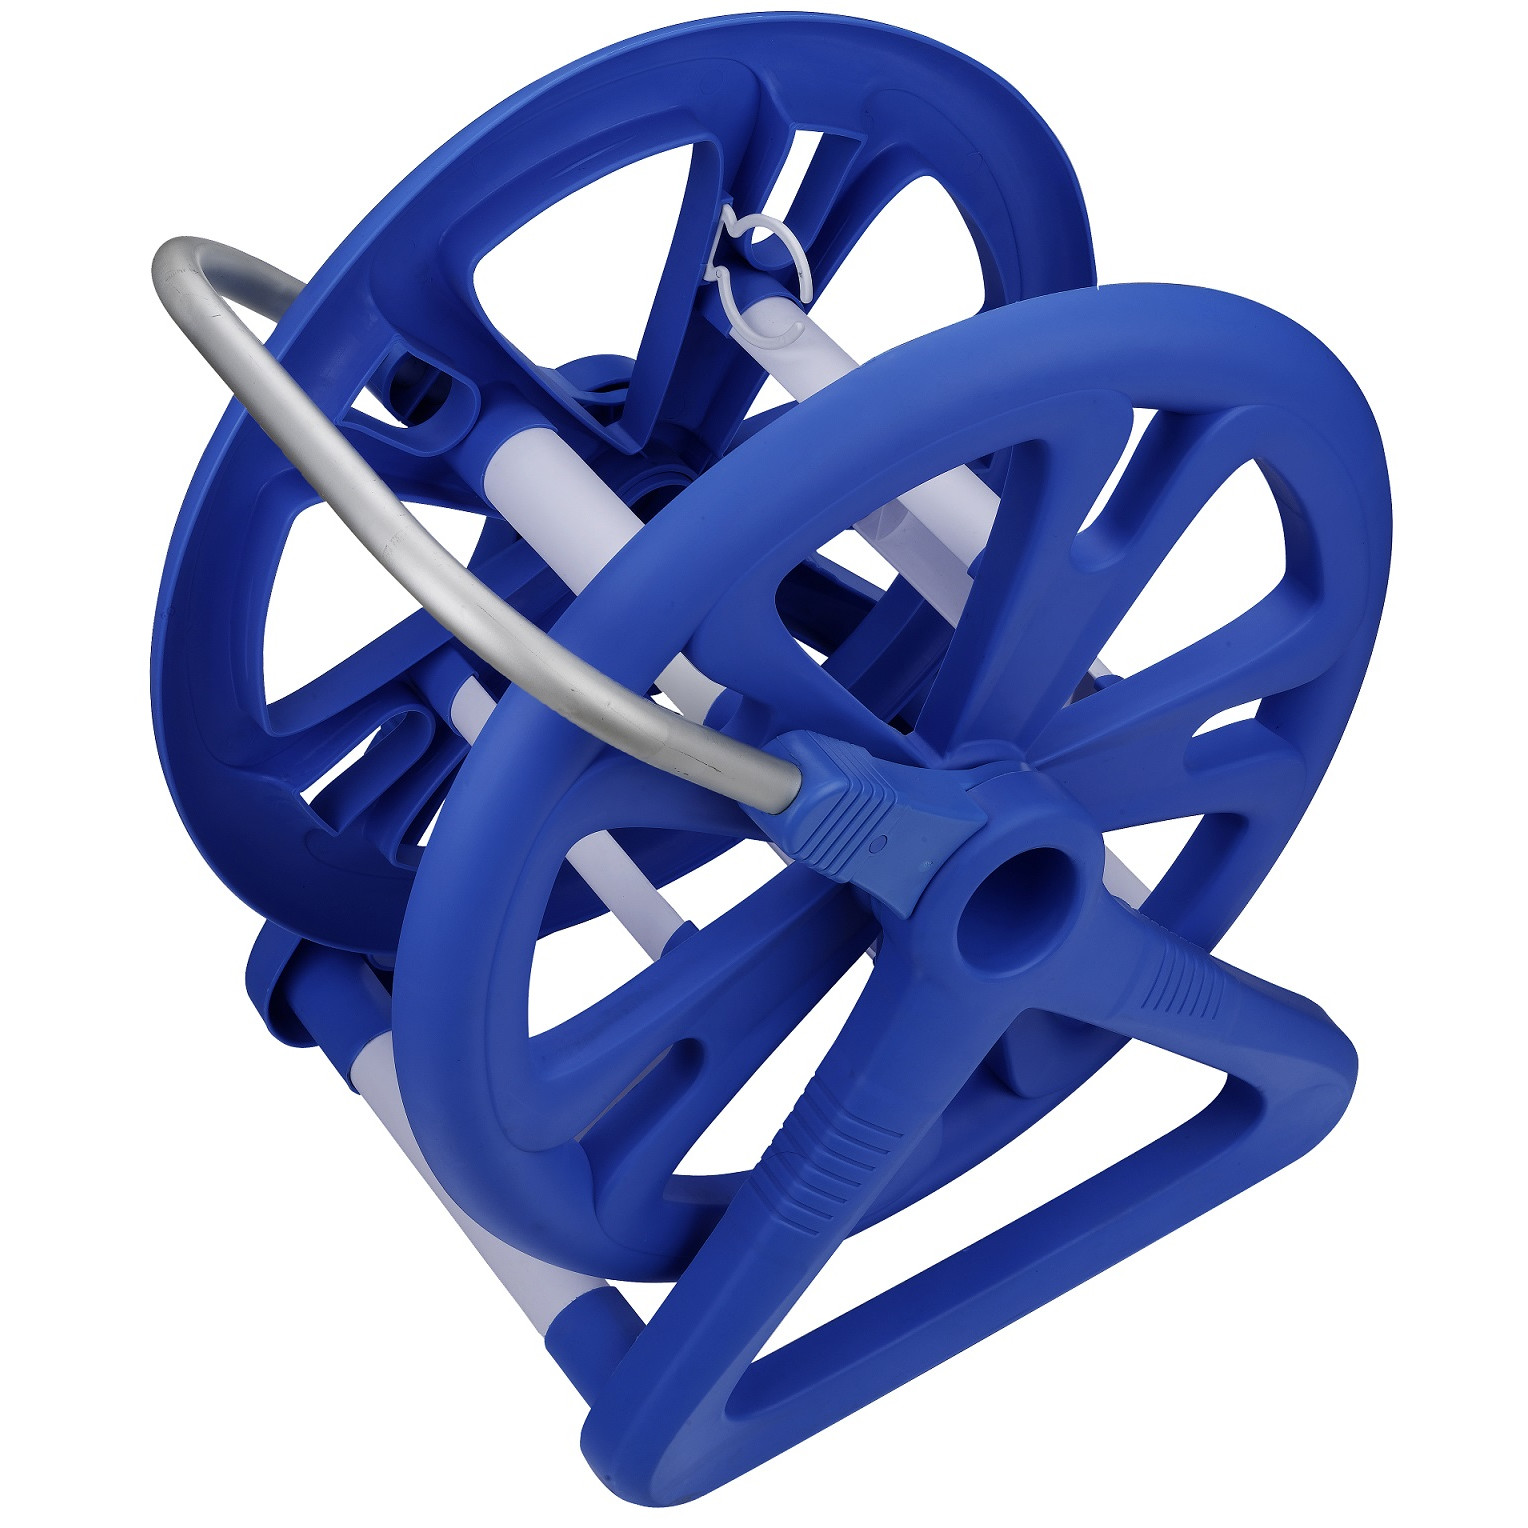 Aqua First Aluminum Vacuum Hose Reel for Swimming Pools for up to 1.5-in W x 42-in L Hoses by Blue Wave Products